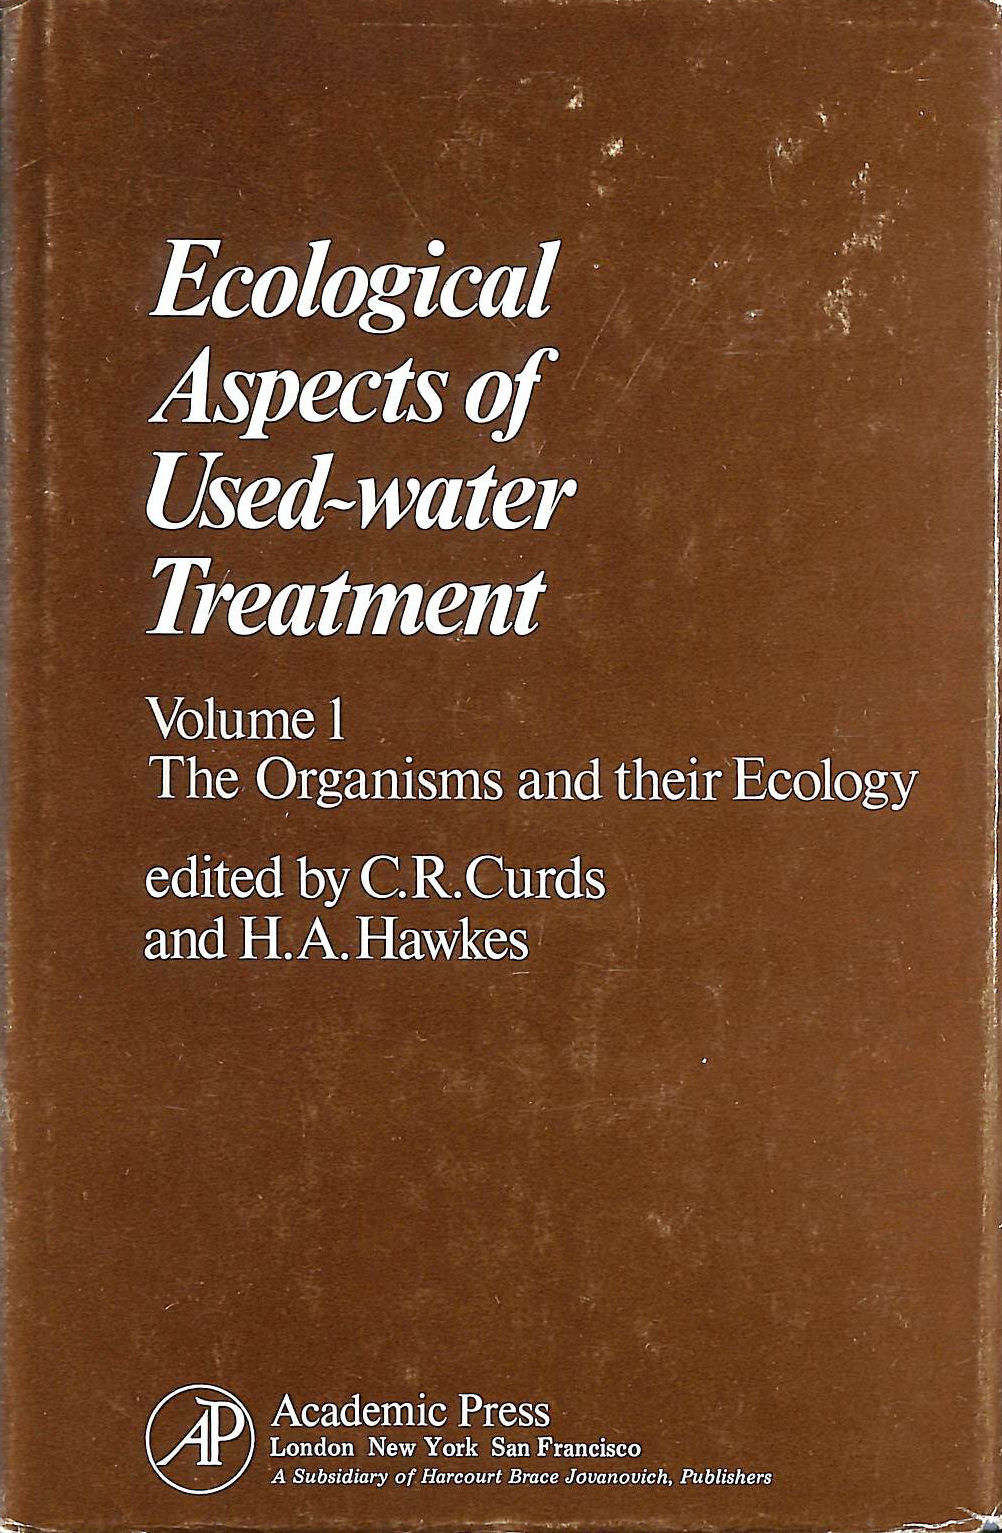 Image for Ecological Aspects of Used-water Treatment: The Organisms and Their Ecology v. 1